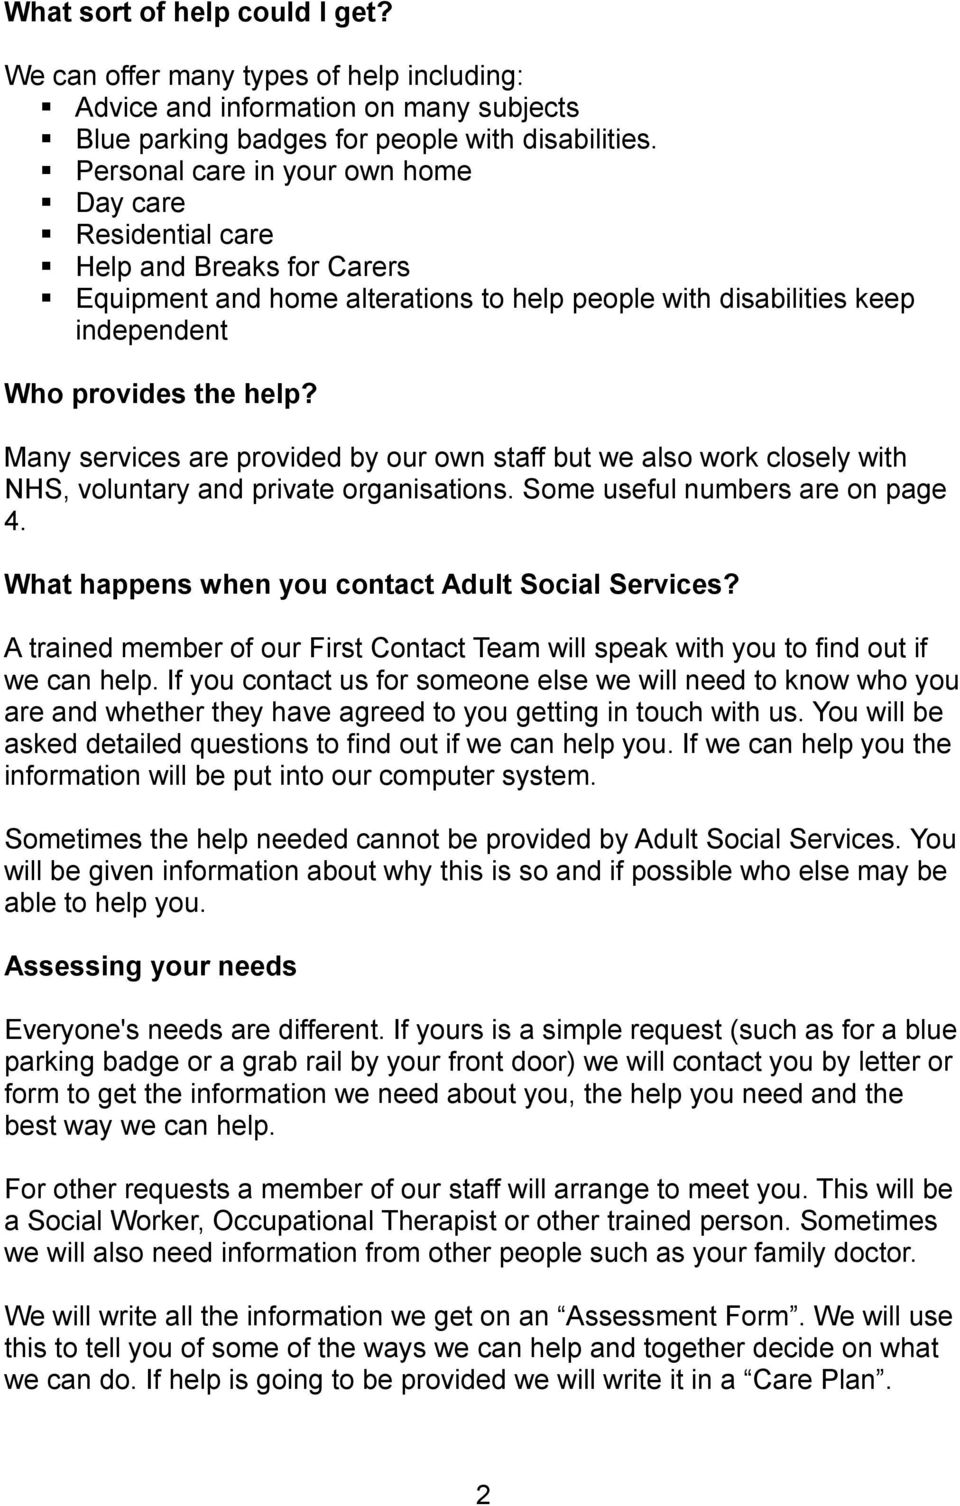 Many services are provided by our own staff but we also work closely with NHS, voluntary and private organisations. Some useful numbers are on page 4.